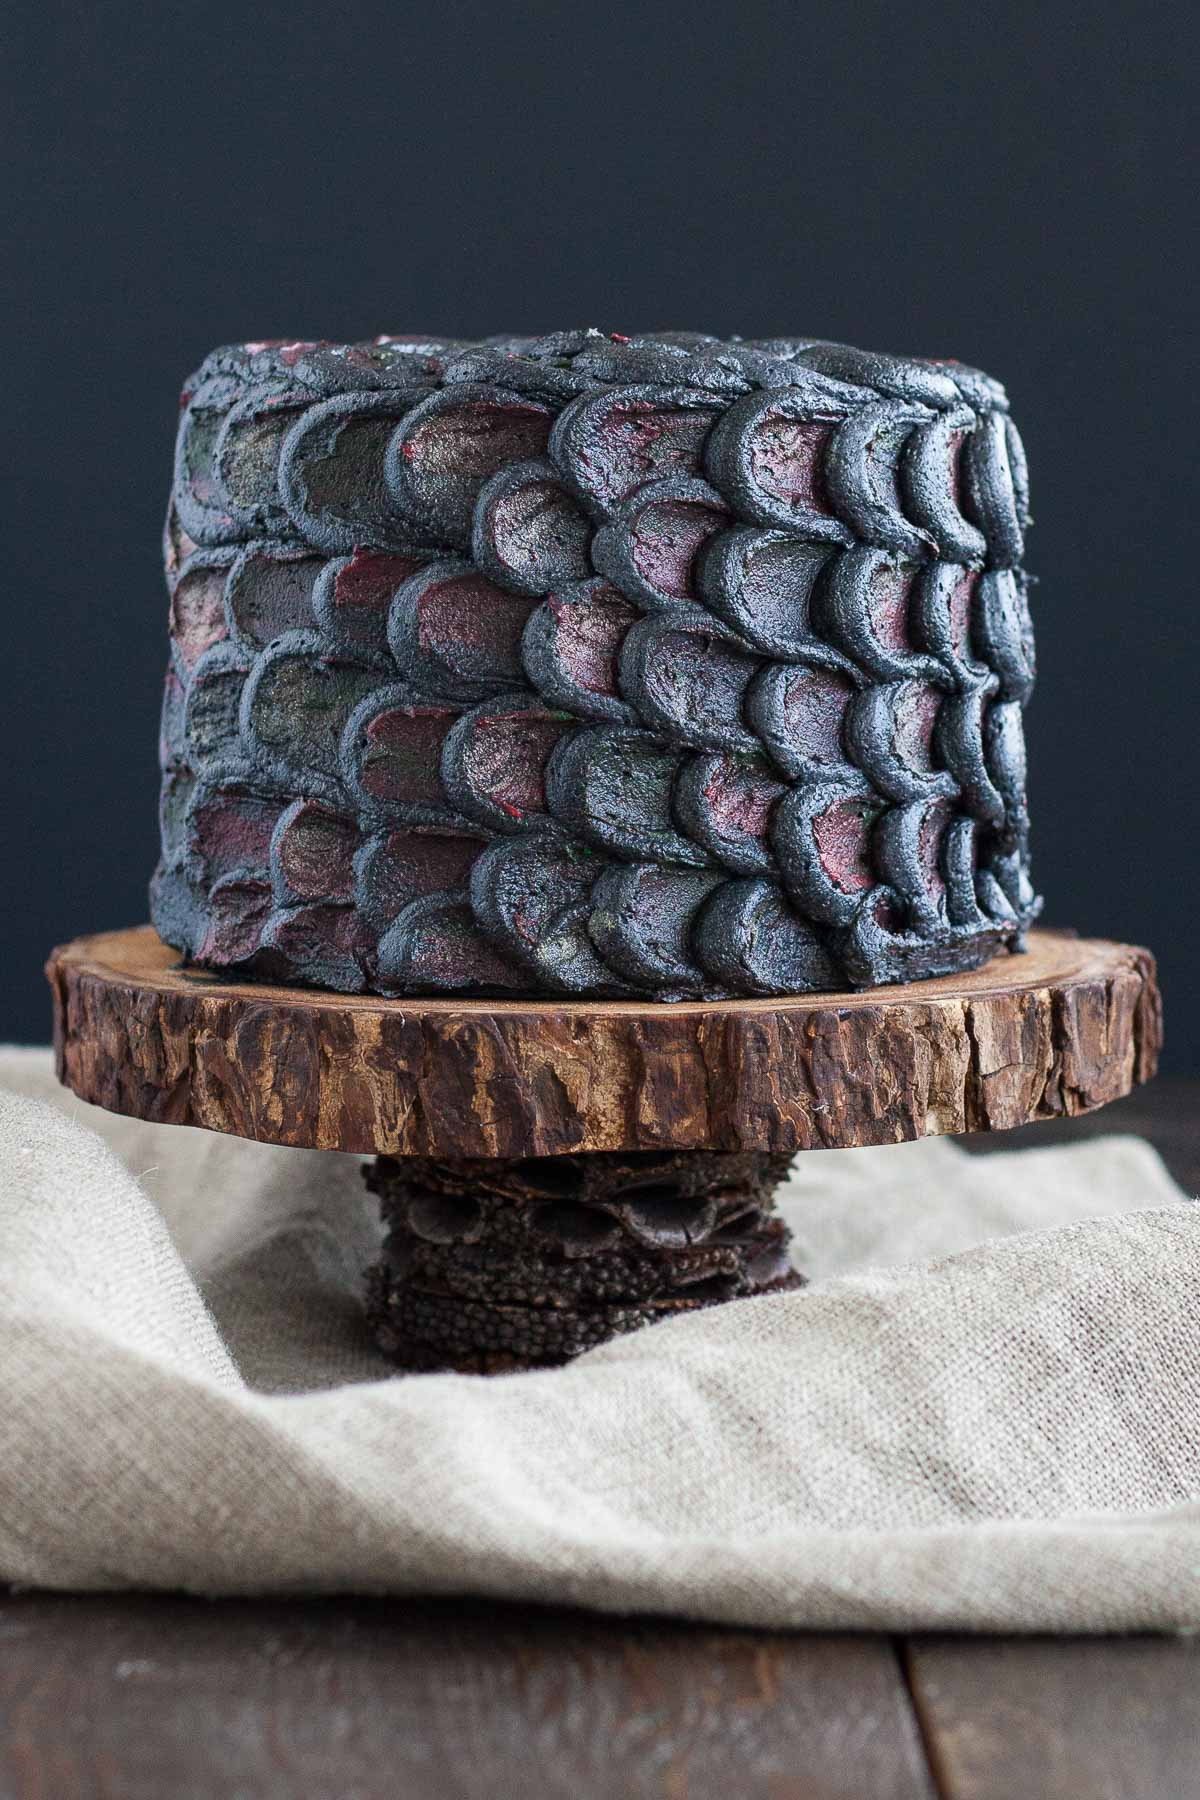 Use This Simple Decorating Technique To Create The Perfect Red Velvet Dragonscale Cake And Impress Your